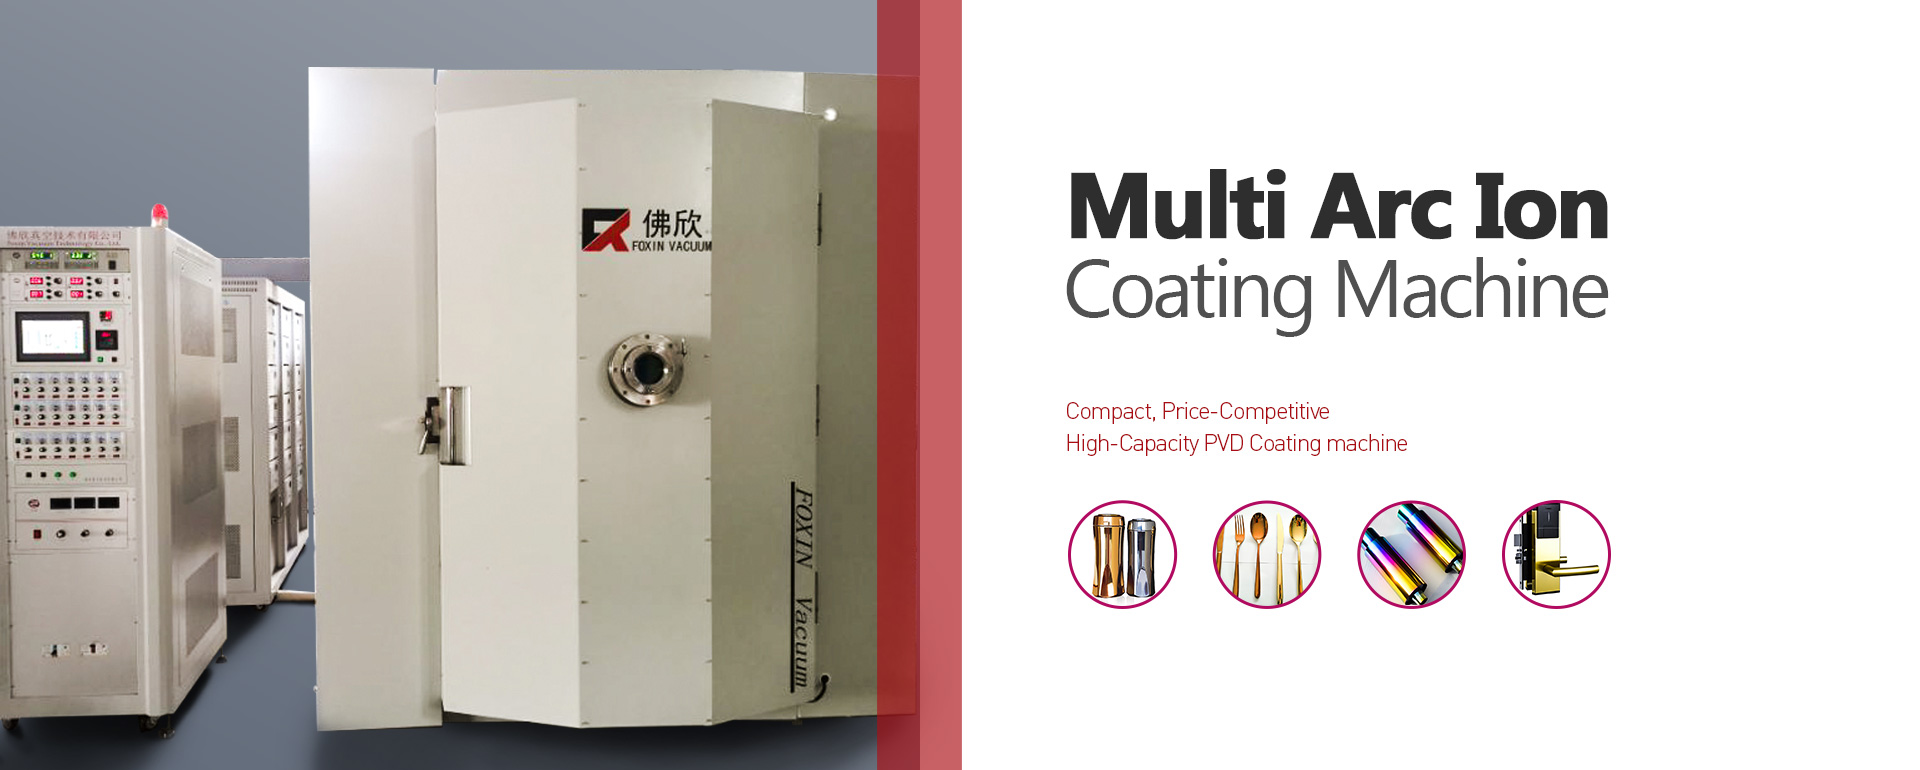 FOXIN Focuses on Vacuum Coating Machine Manufacturing